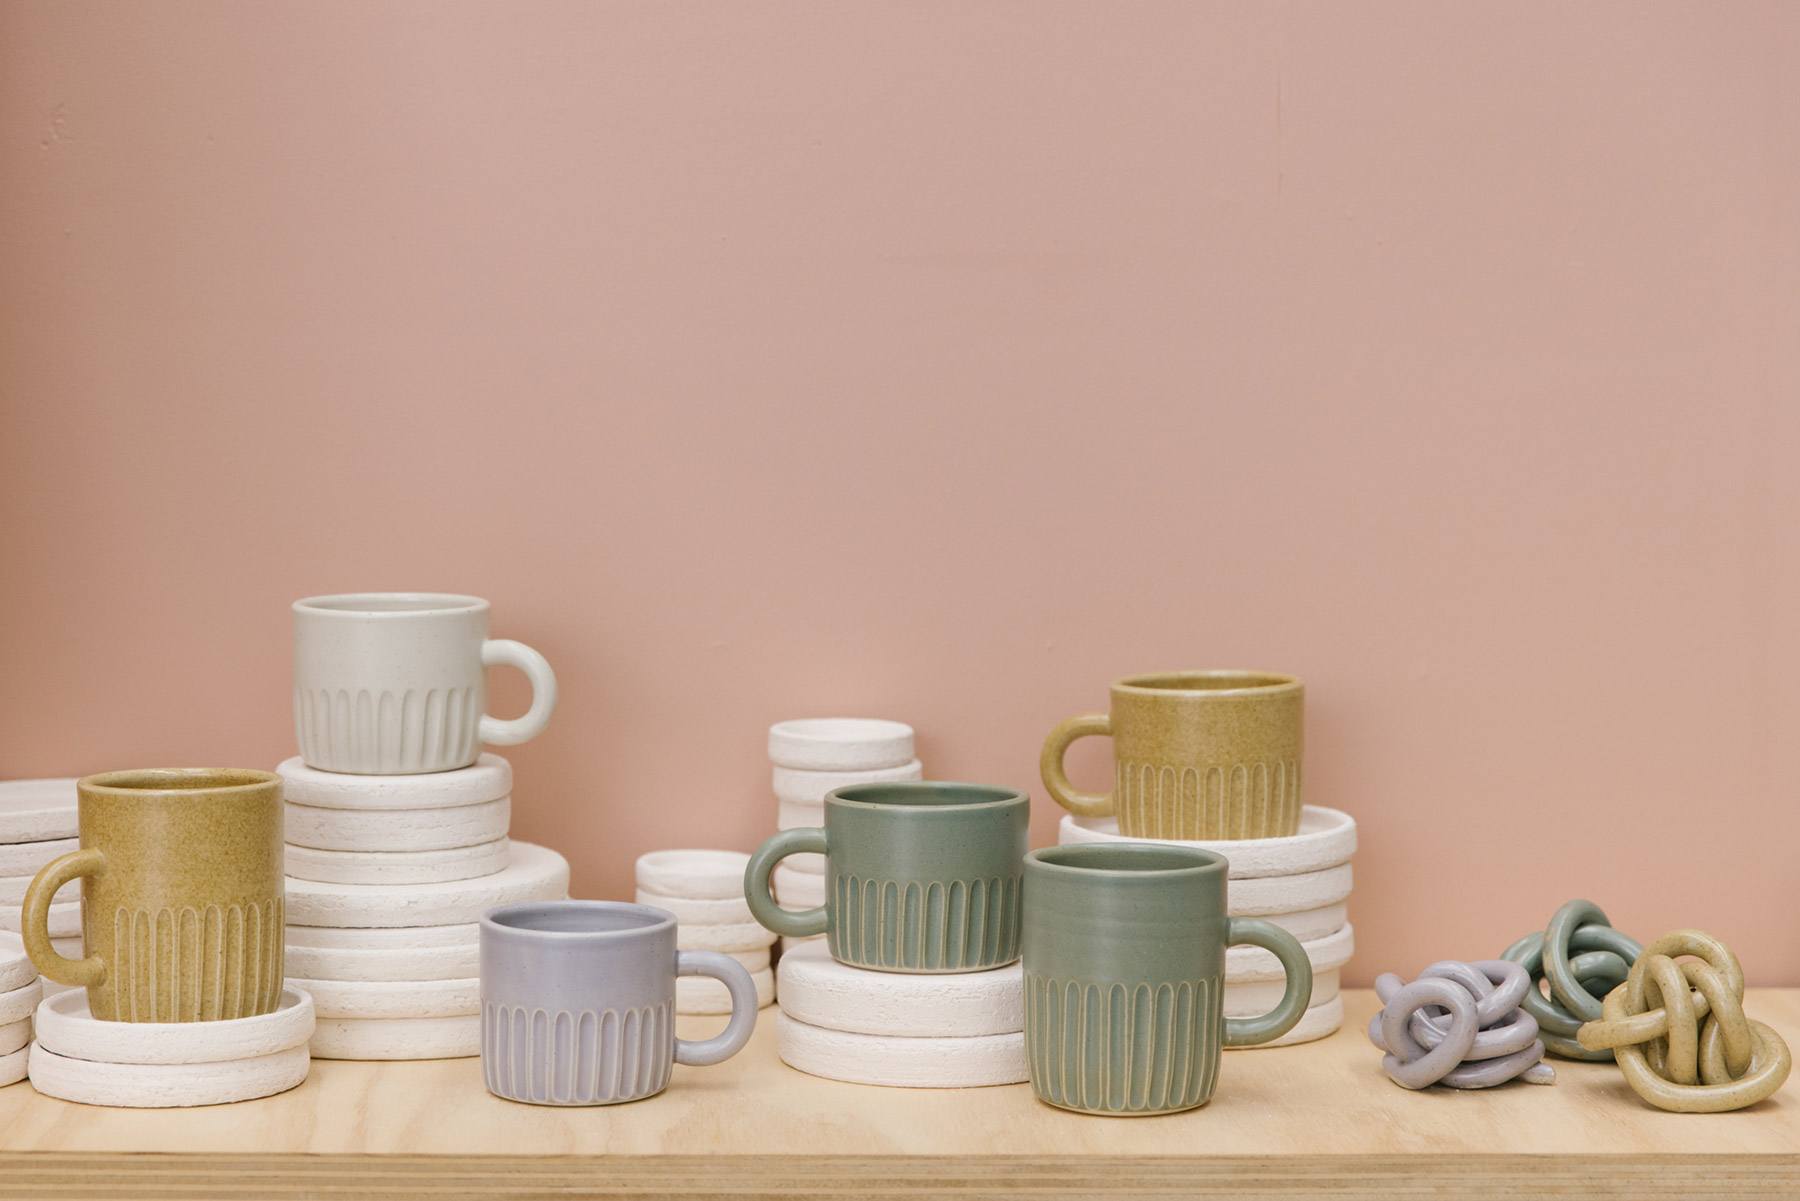 Handmade ceramic mugs by Melbourne ceramicist Arcadia Scott in glazed green, lilac, mustard and cream colours, sitting on a ply bench and white cylindrical plinths with a pastel pink backdrop